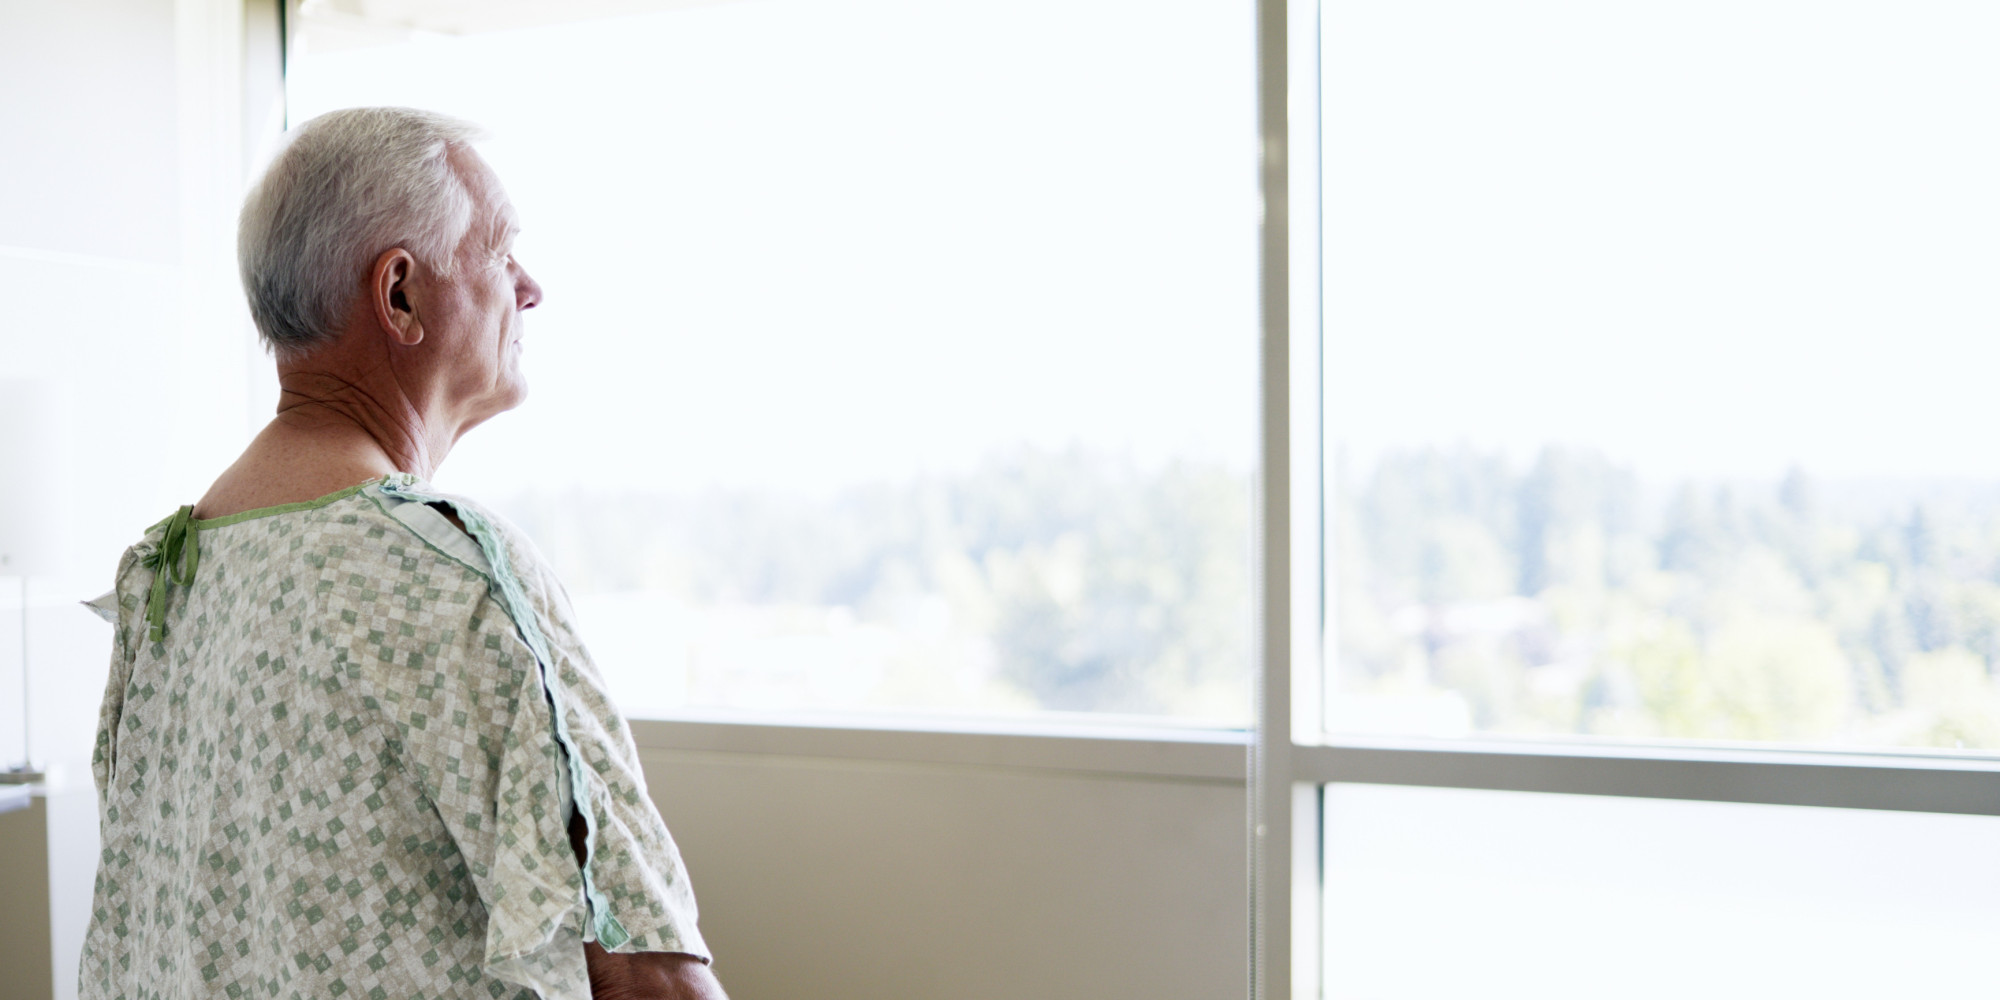 Senior male patient looking out window in hospital